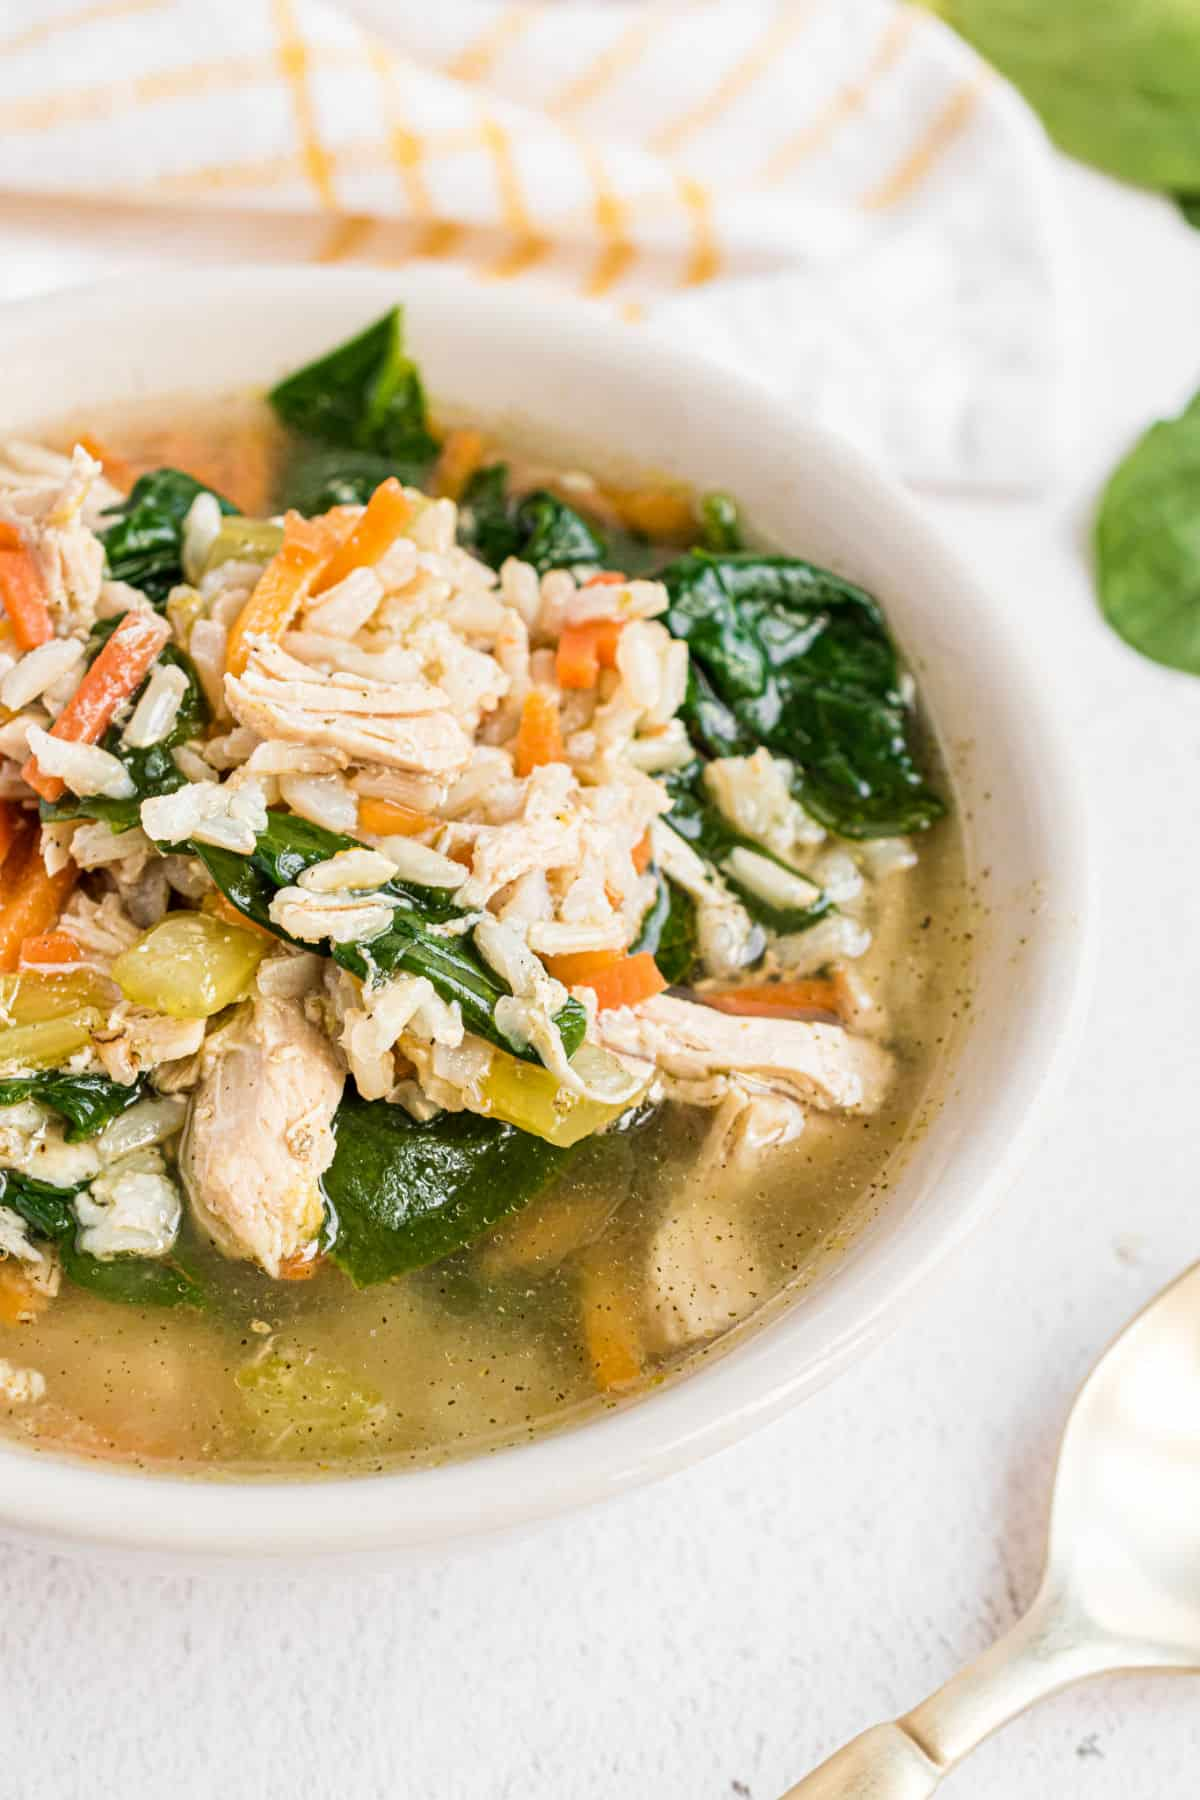 Chicken and rice soup in a serving bowl.